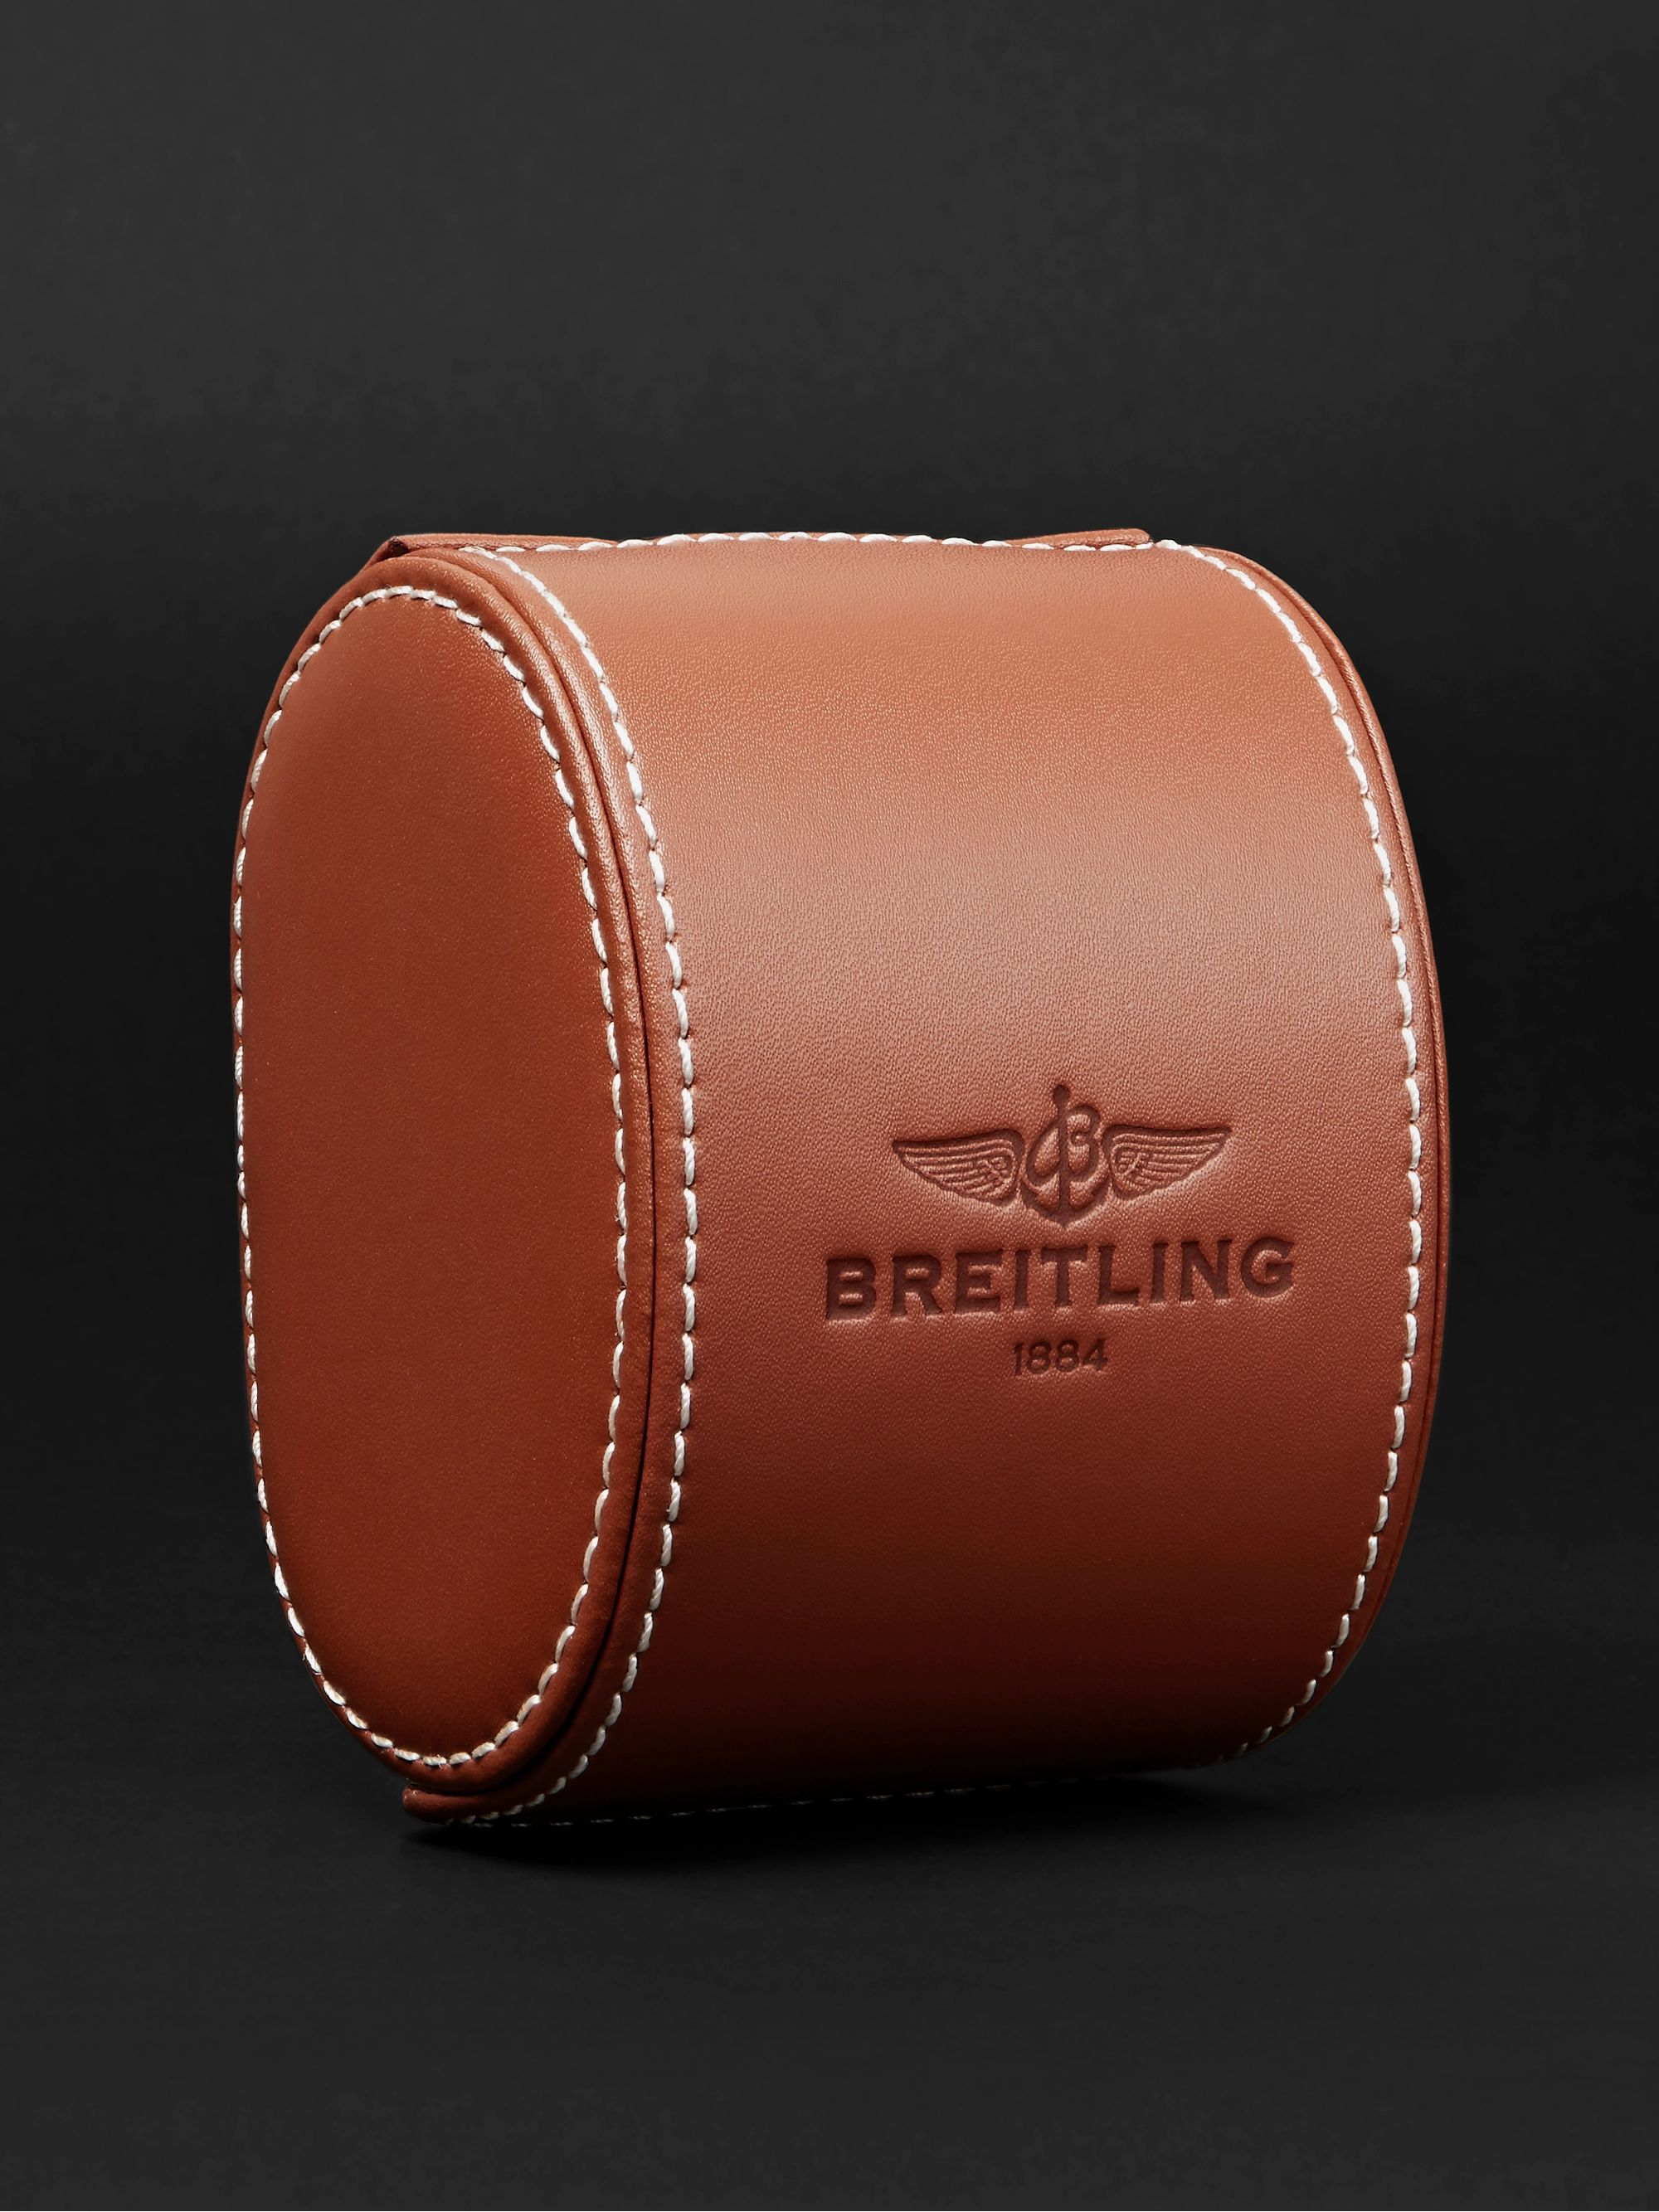 Breitling Superocean Héritage II B20 Automatic 42mm Stainless Steel, Red Gold and Rubber Watch, Ref. No. UB2010121B1S1